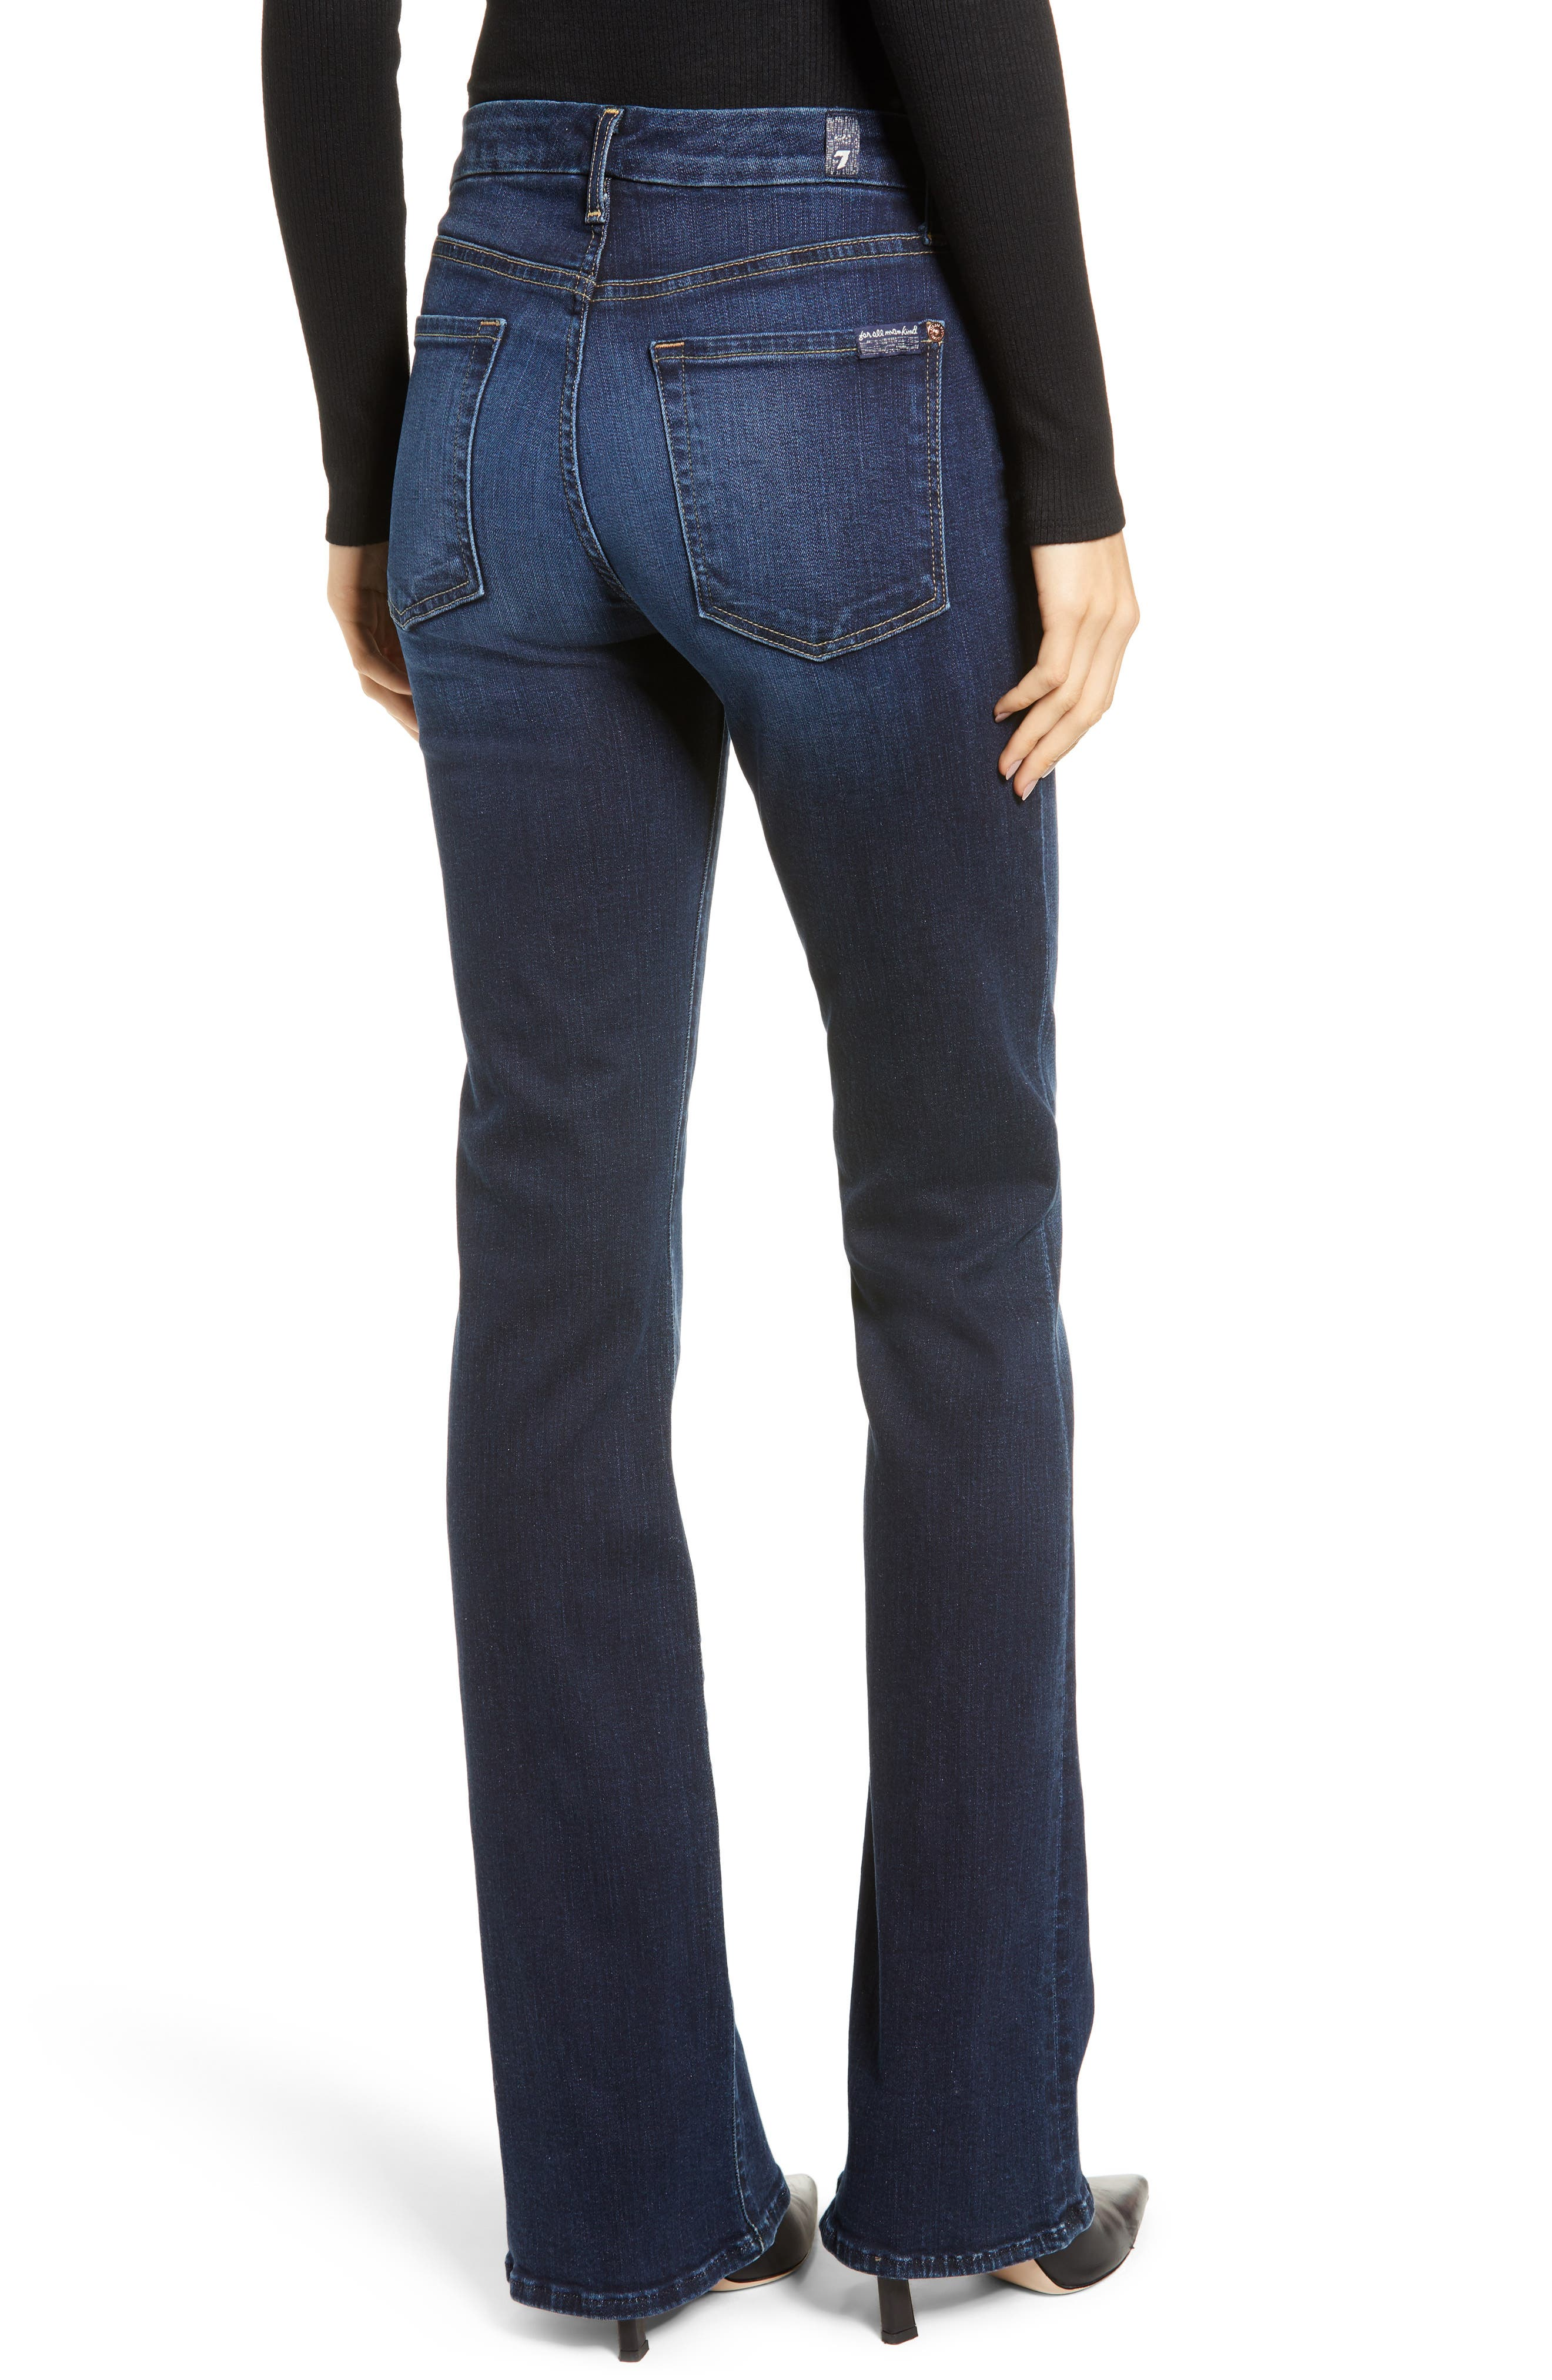 7 FOR ALL MANKIND<SUP>®</SUP>, b(air) Kimmie Bootcut Jeans, Alternate thumbnail 2, color, AUTHENTIC FATE